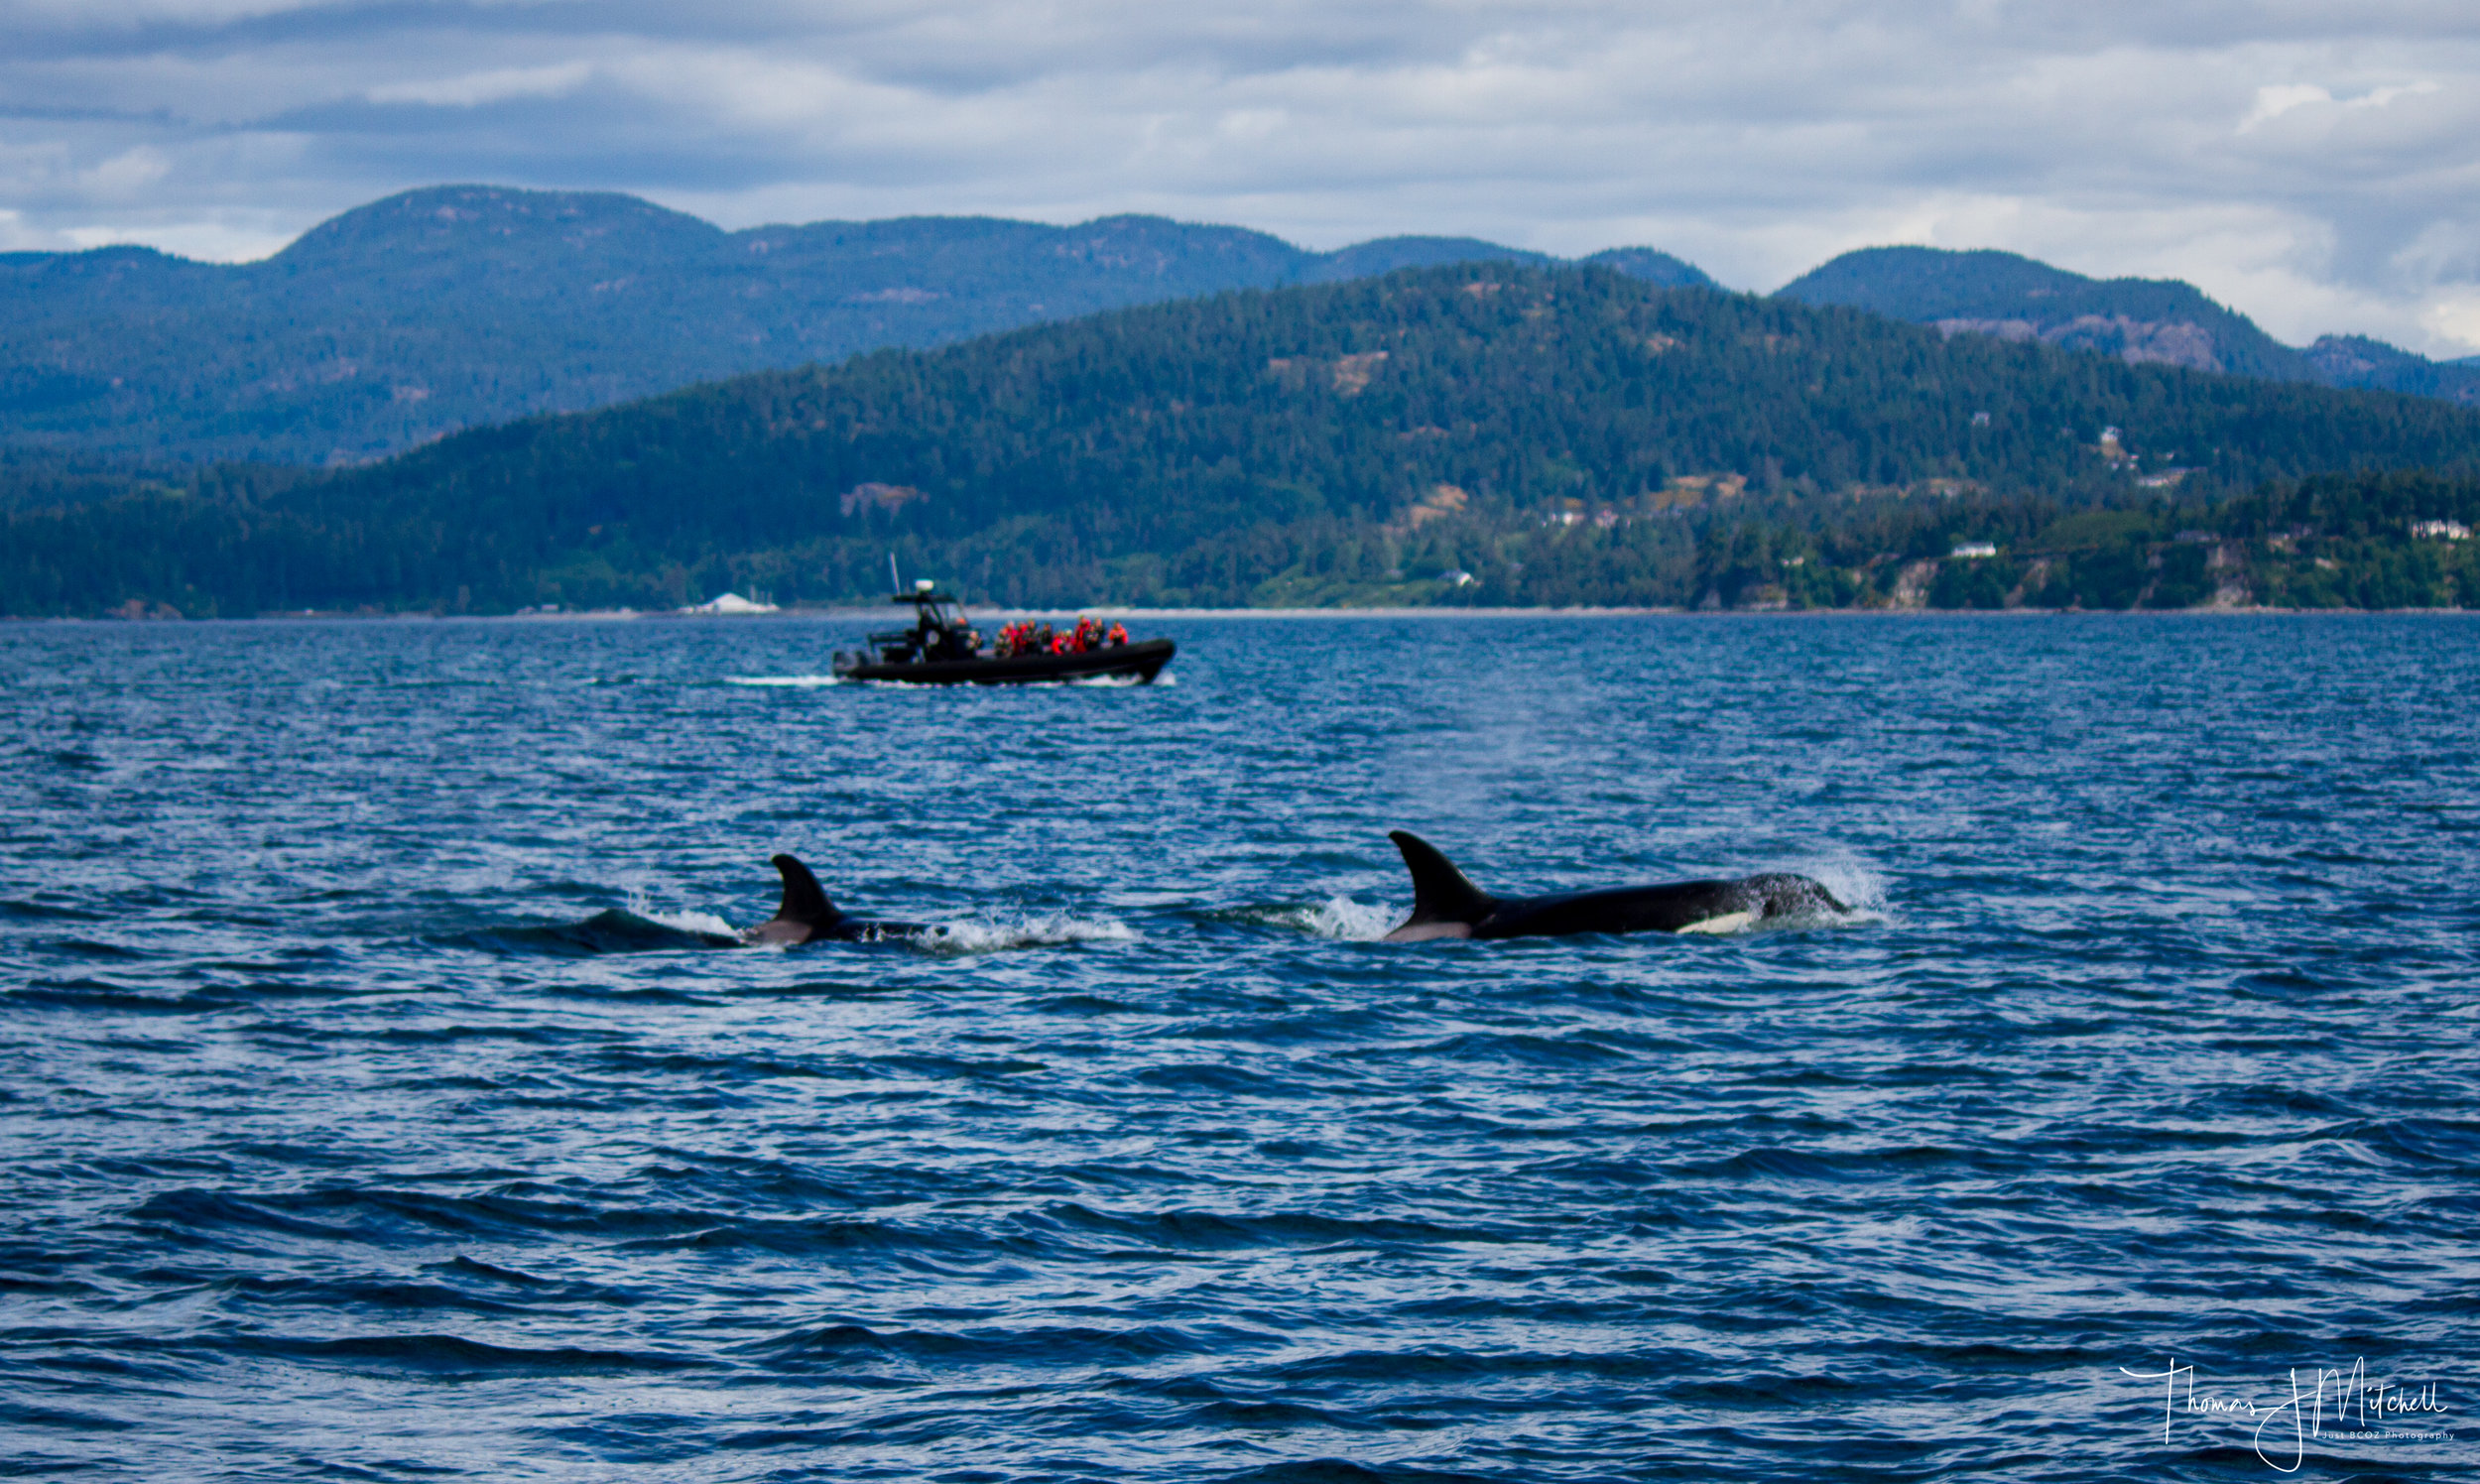 The T100s cruising past Sooke, BC - BC TIKA in the background with Capt. Gordon at her hel